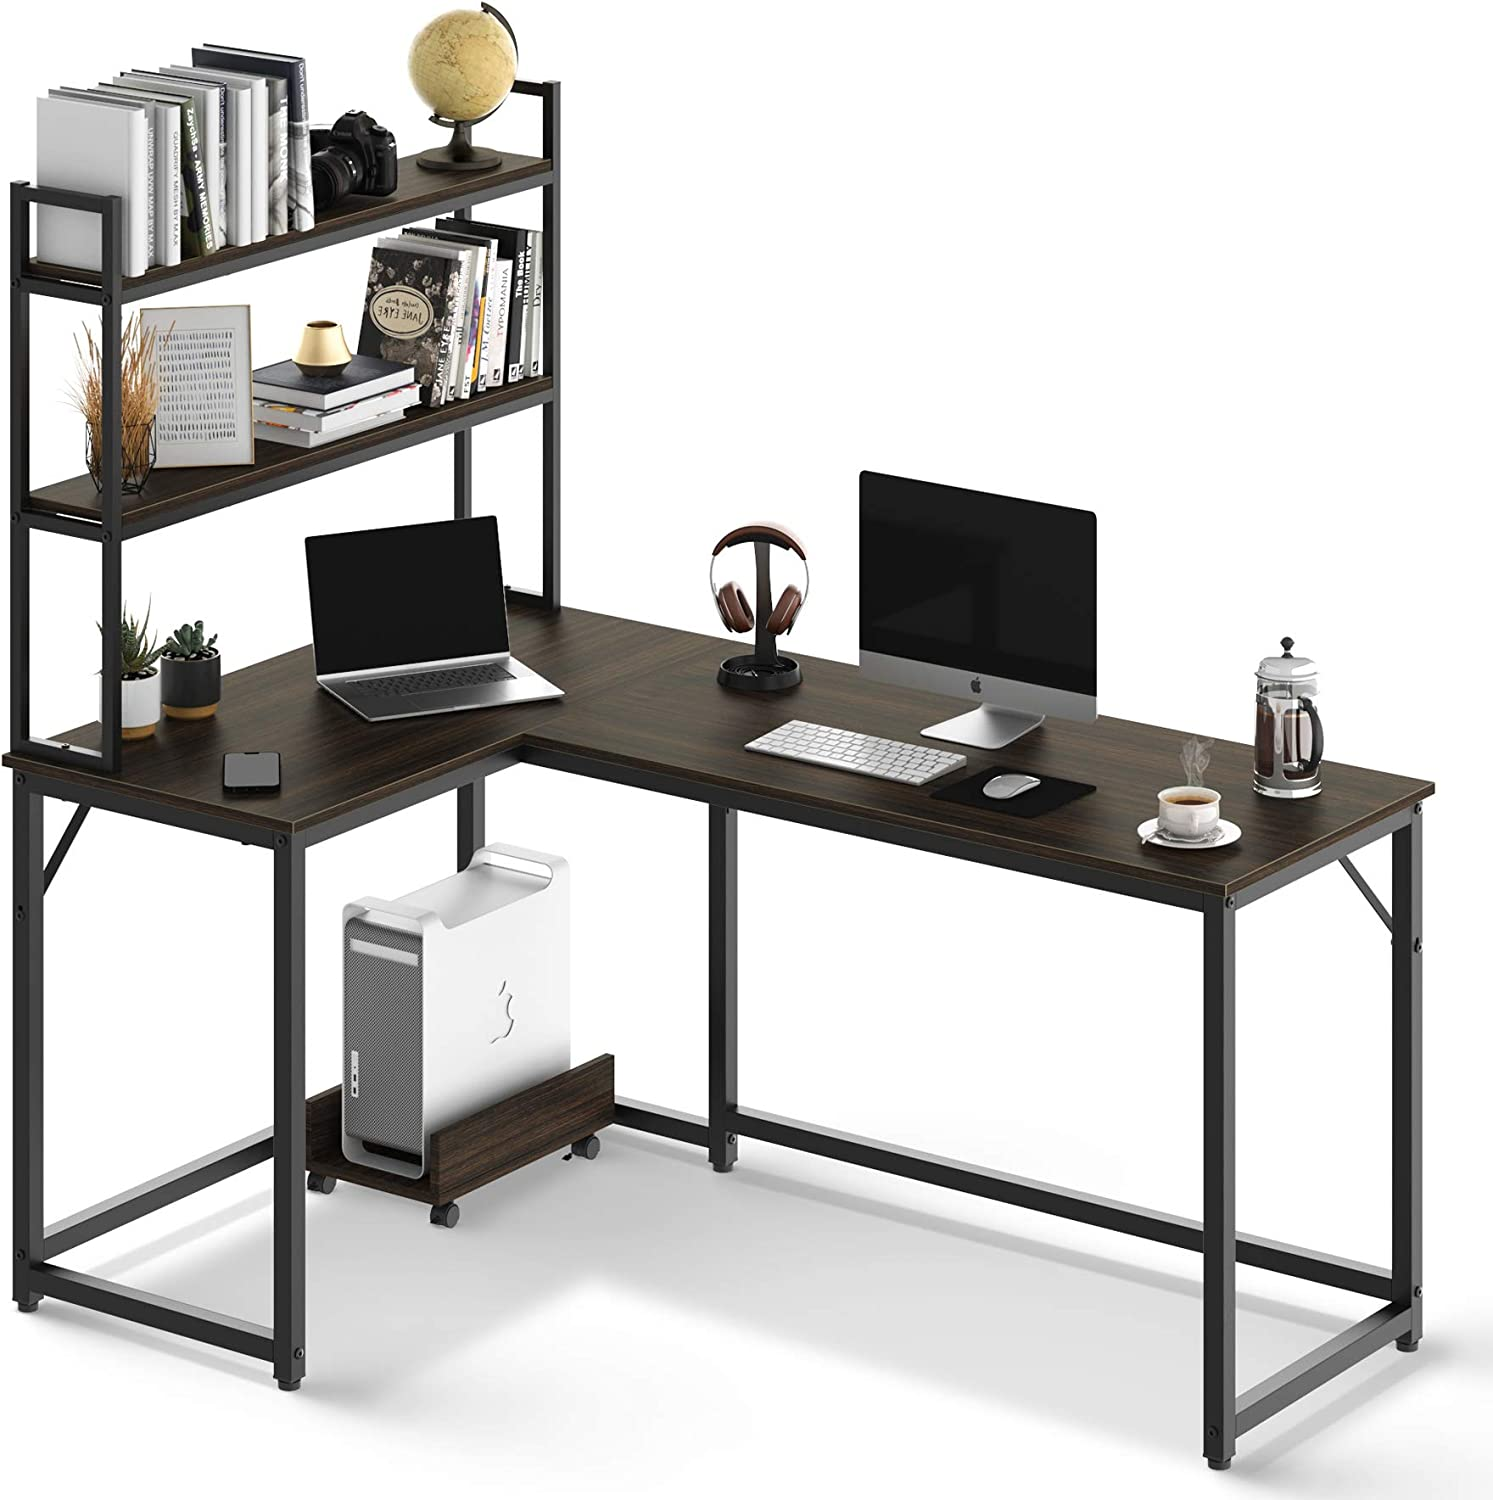 L Shaped Desk with Bookshelves 59 Comp Brown Inches Home Office ハイクオリティ 最安値挑戦